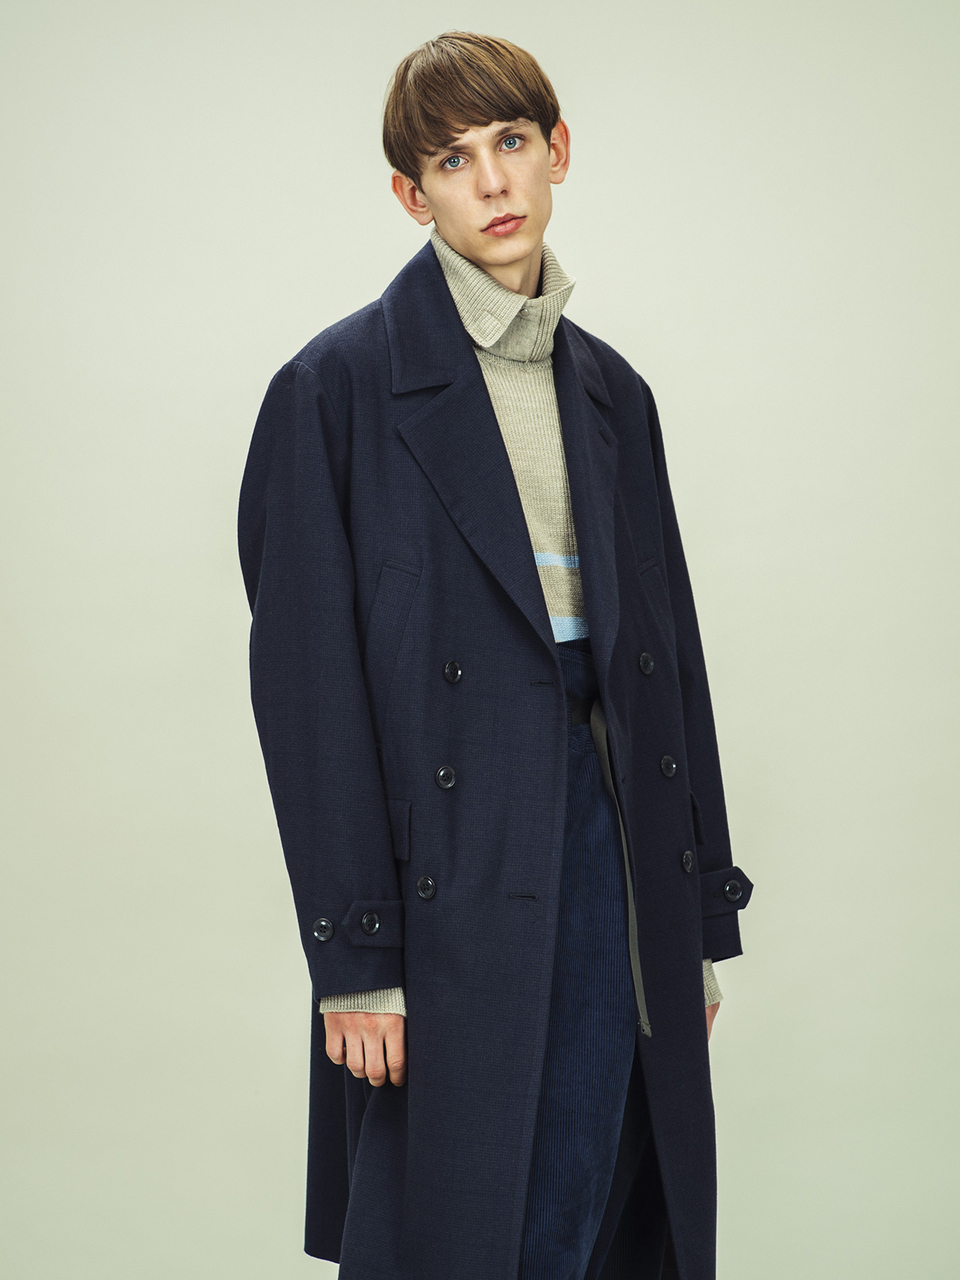 2019 AUTUMN/WINTER COLLECTION